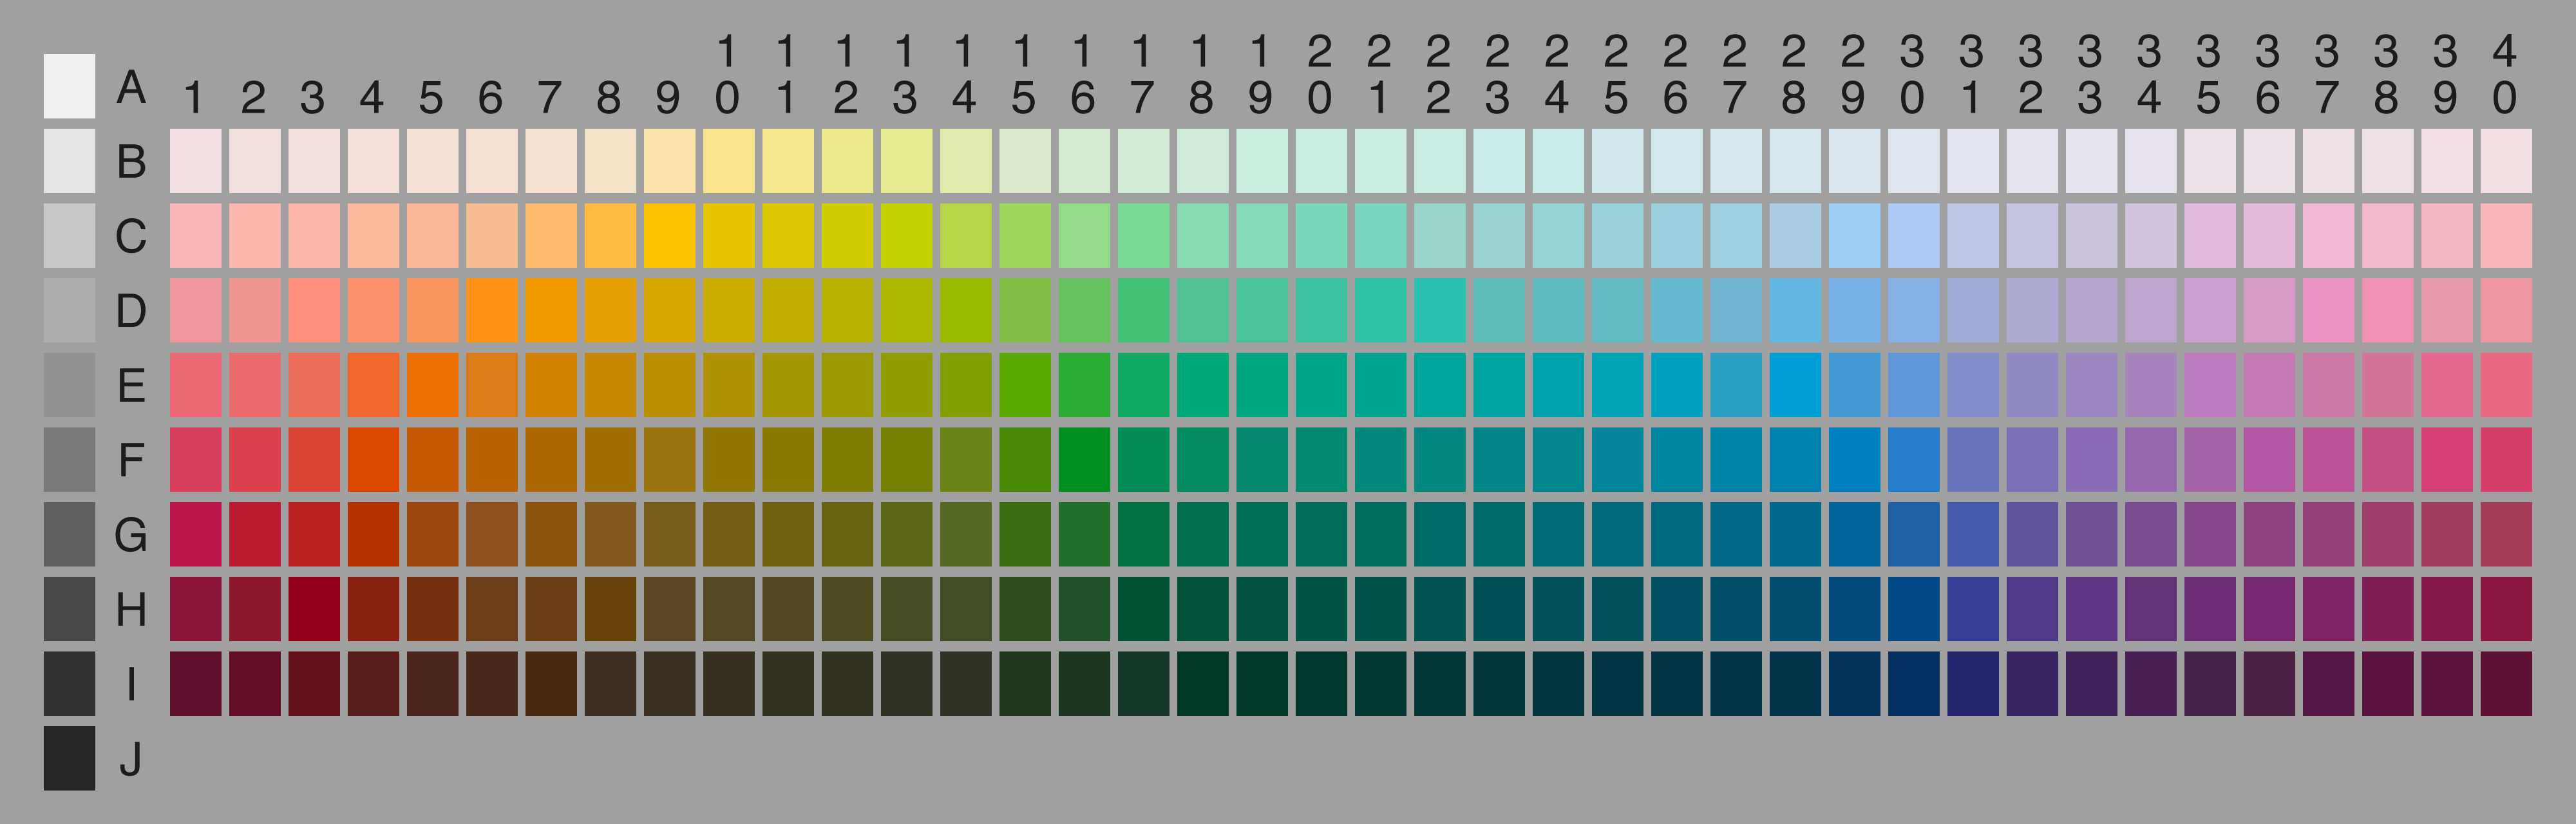 WCS Data Archives – Sample Html Color Code Chart